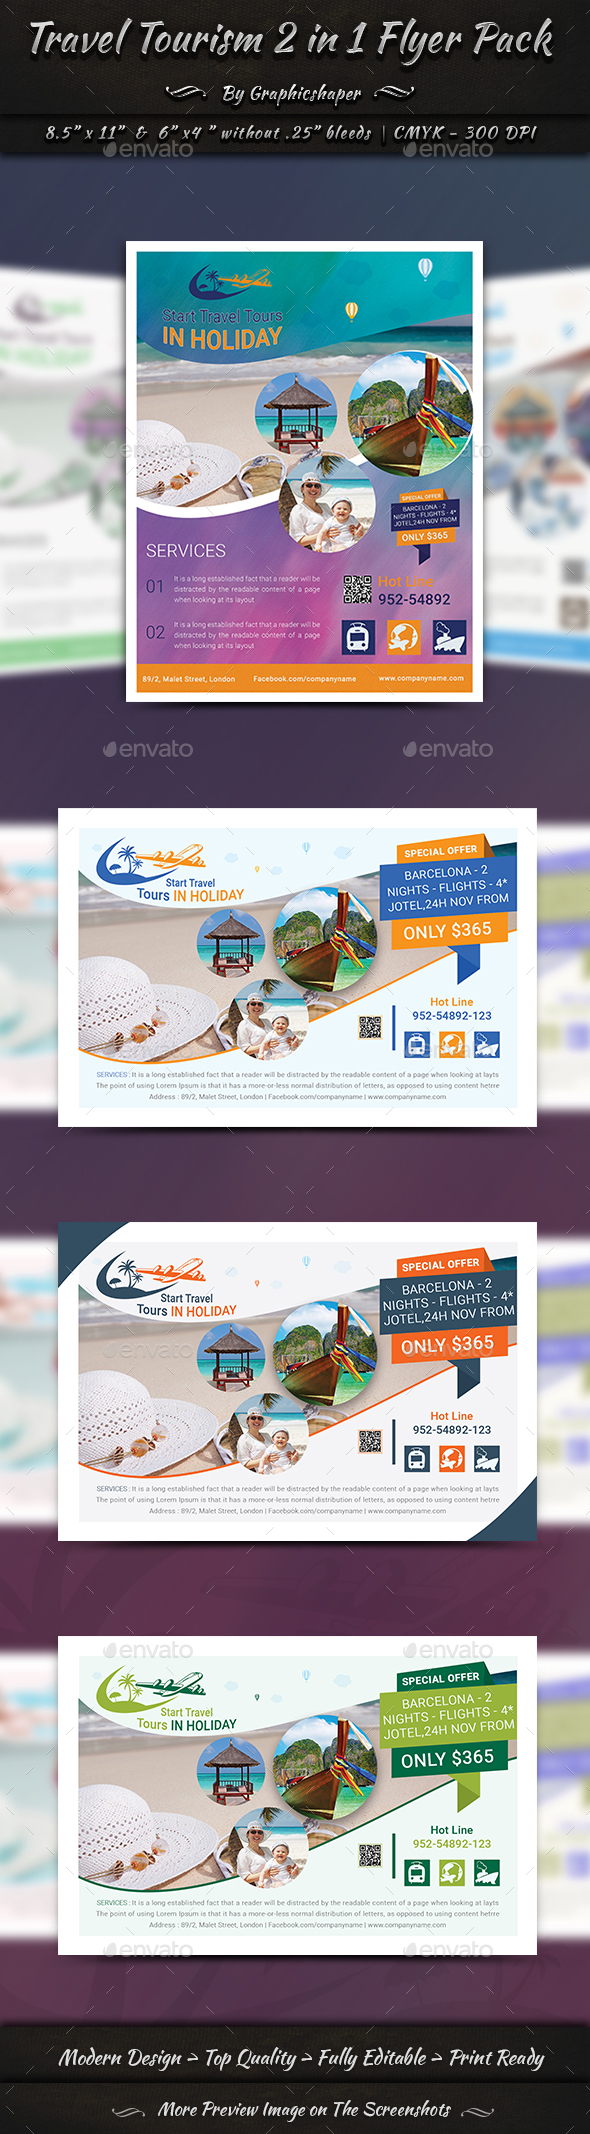 Travel Tourism 2 in 1 Flyer Pack - Corporate Flyers